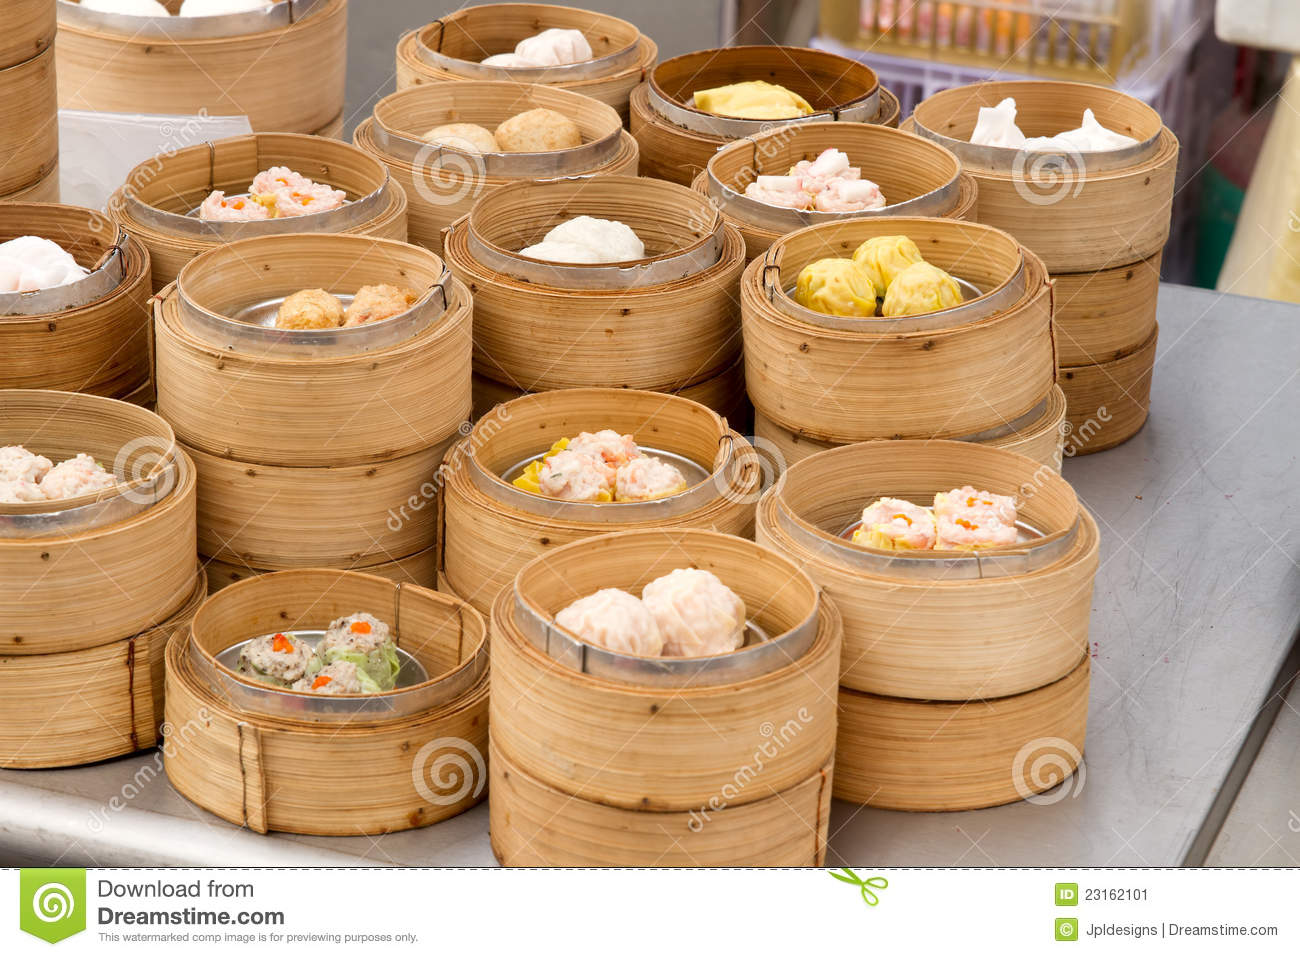 steamed dim sum in bamboo trays stock image image of singapore dumplings 23162101. Black Bedroom Furniture Sets. Home Design Ideas